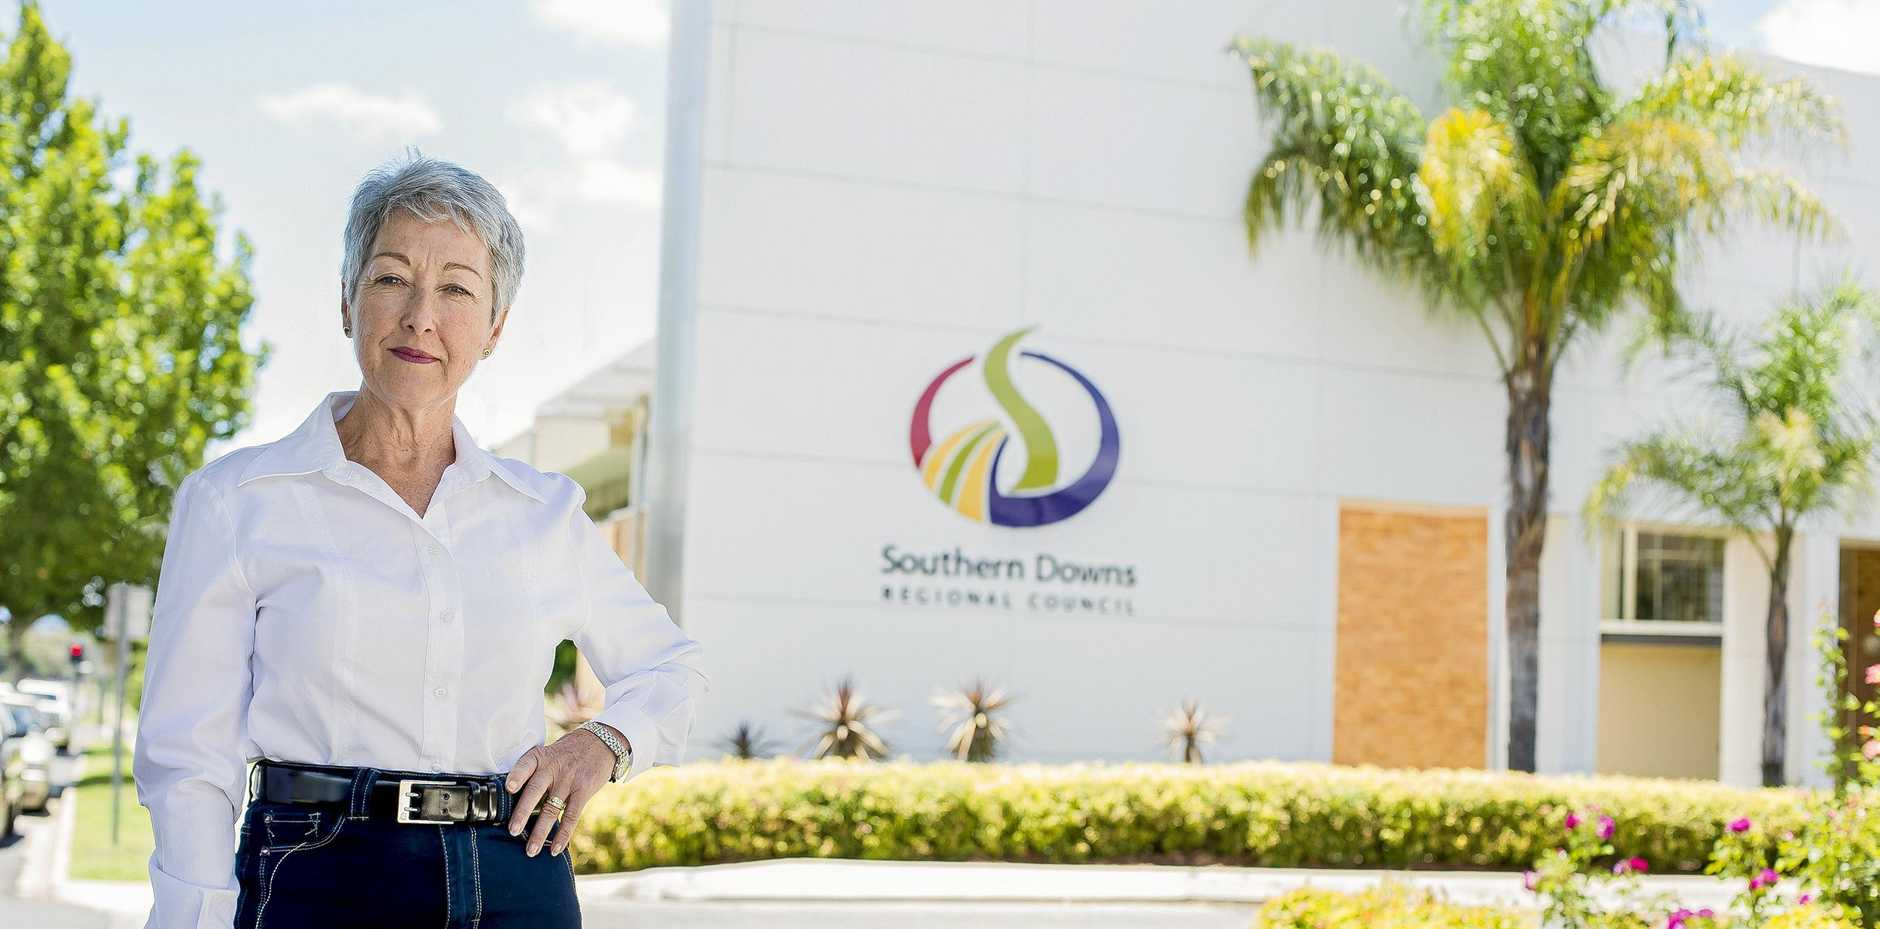 Southern Downs Regional Council mayor Tracy Dobie has taken aim at Member for Southern Downs James Lister.